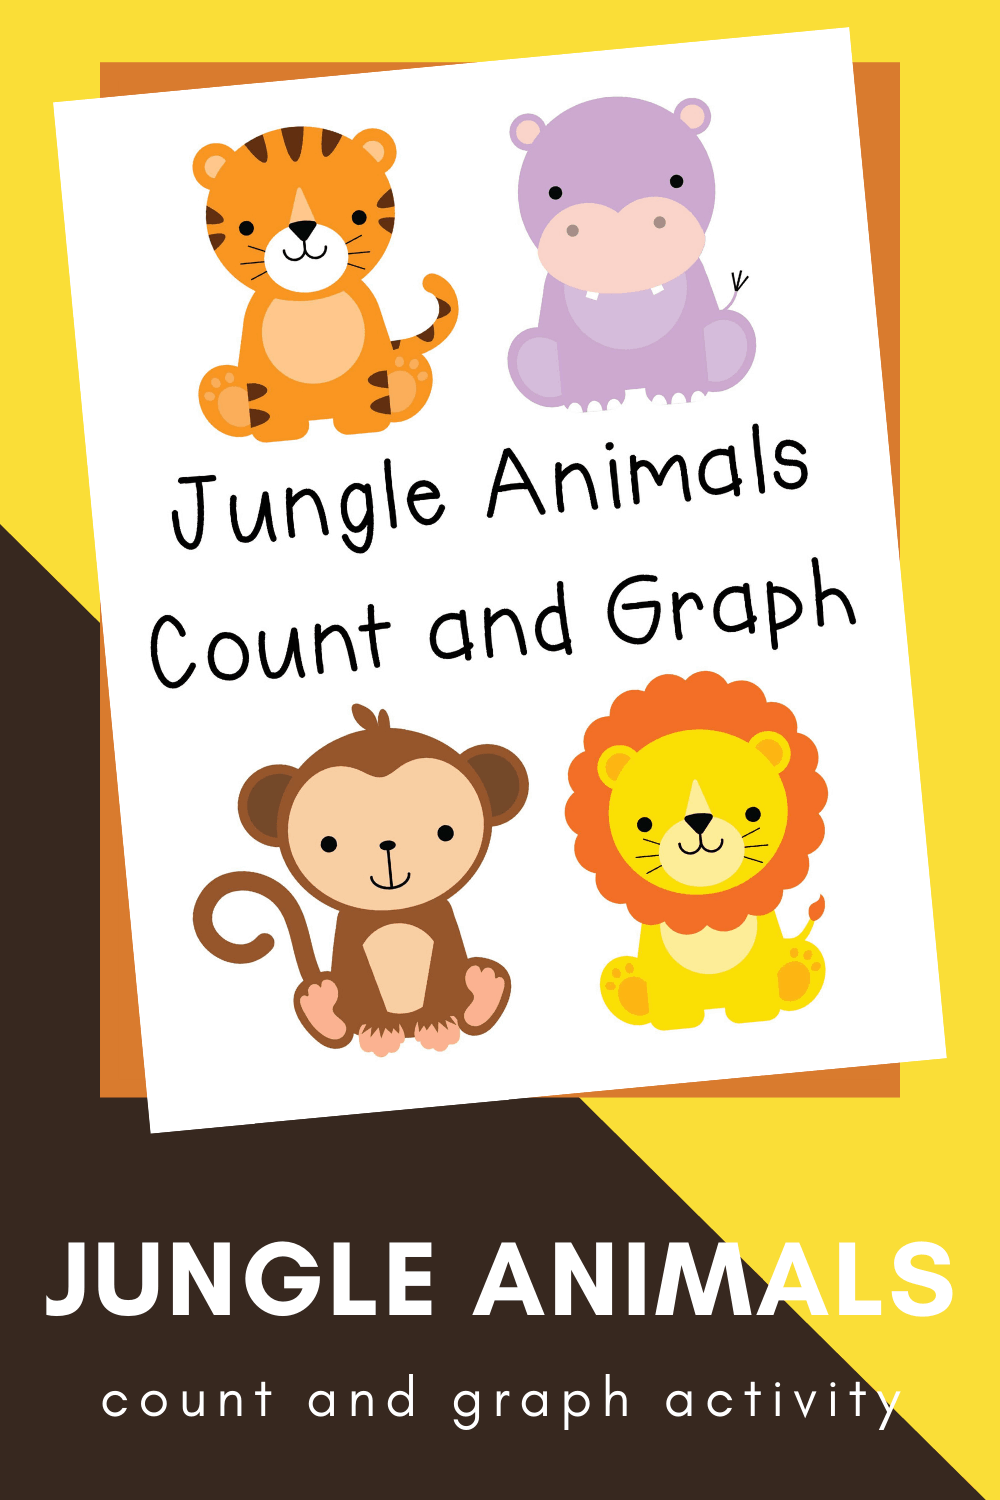 Be sure to add these fun jungle animal count and graph worksheets to your preschool activities! They're perfect any day of the year!